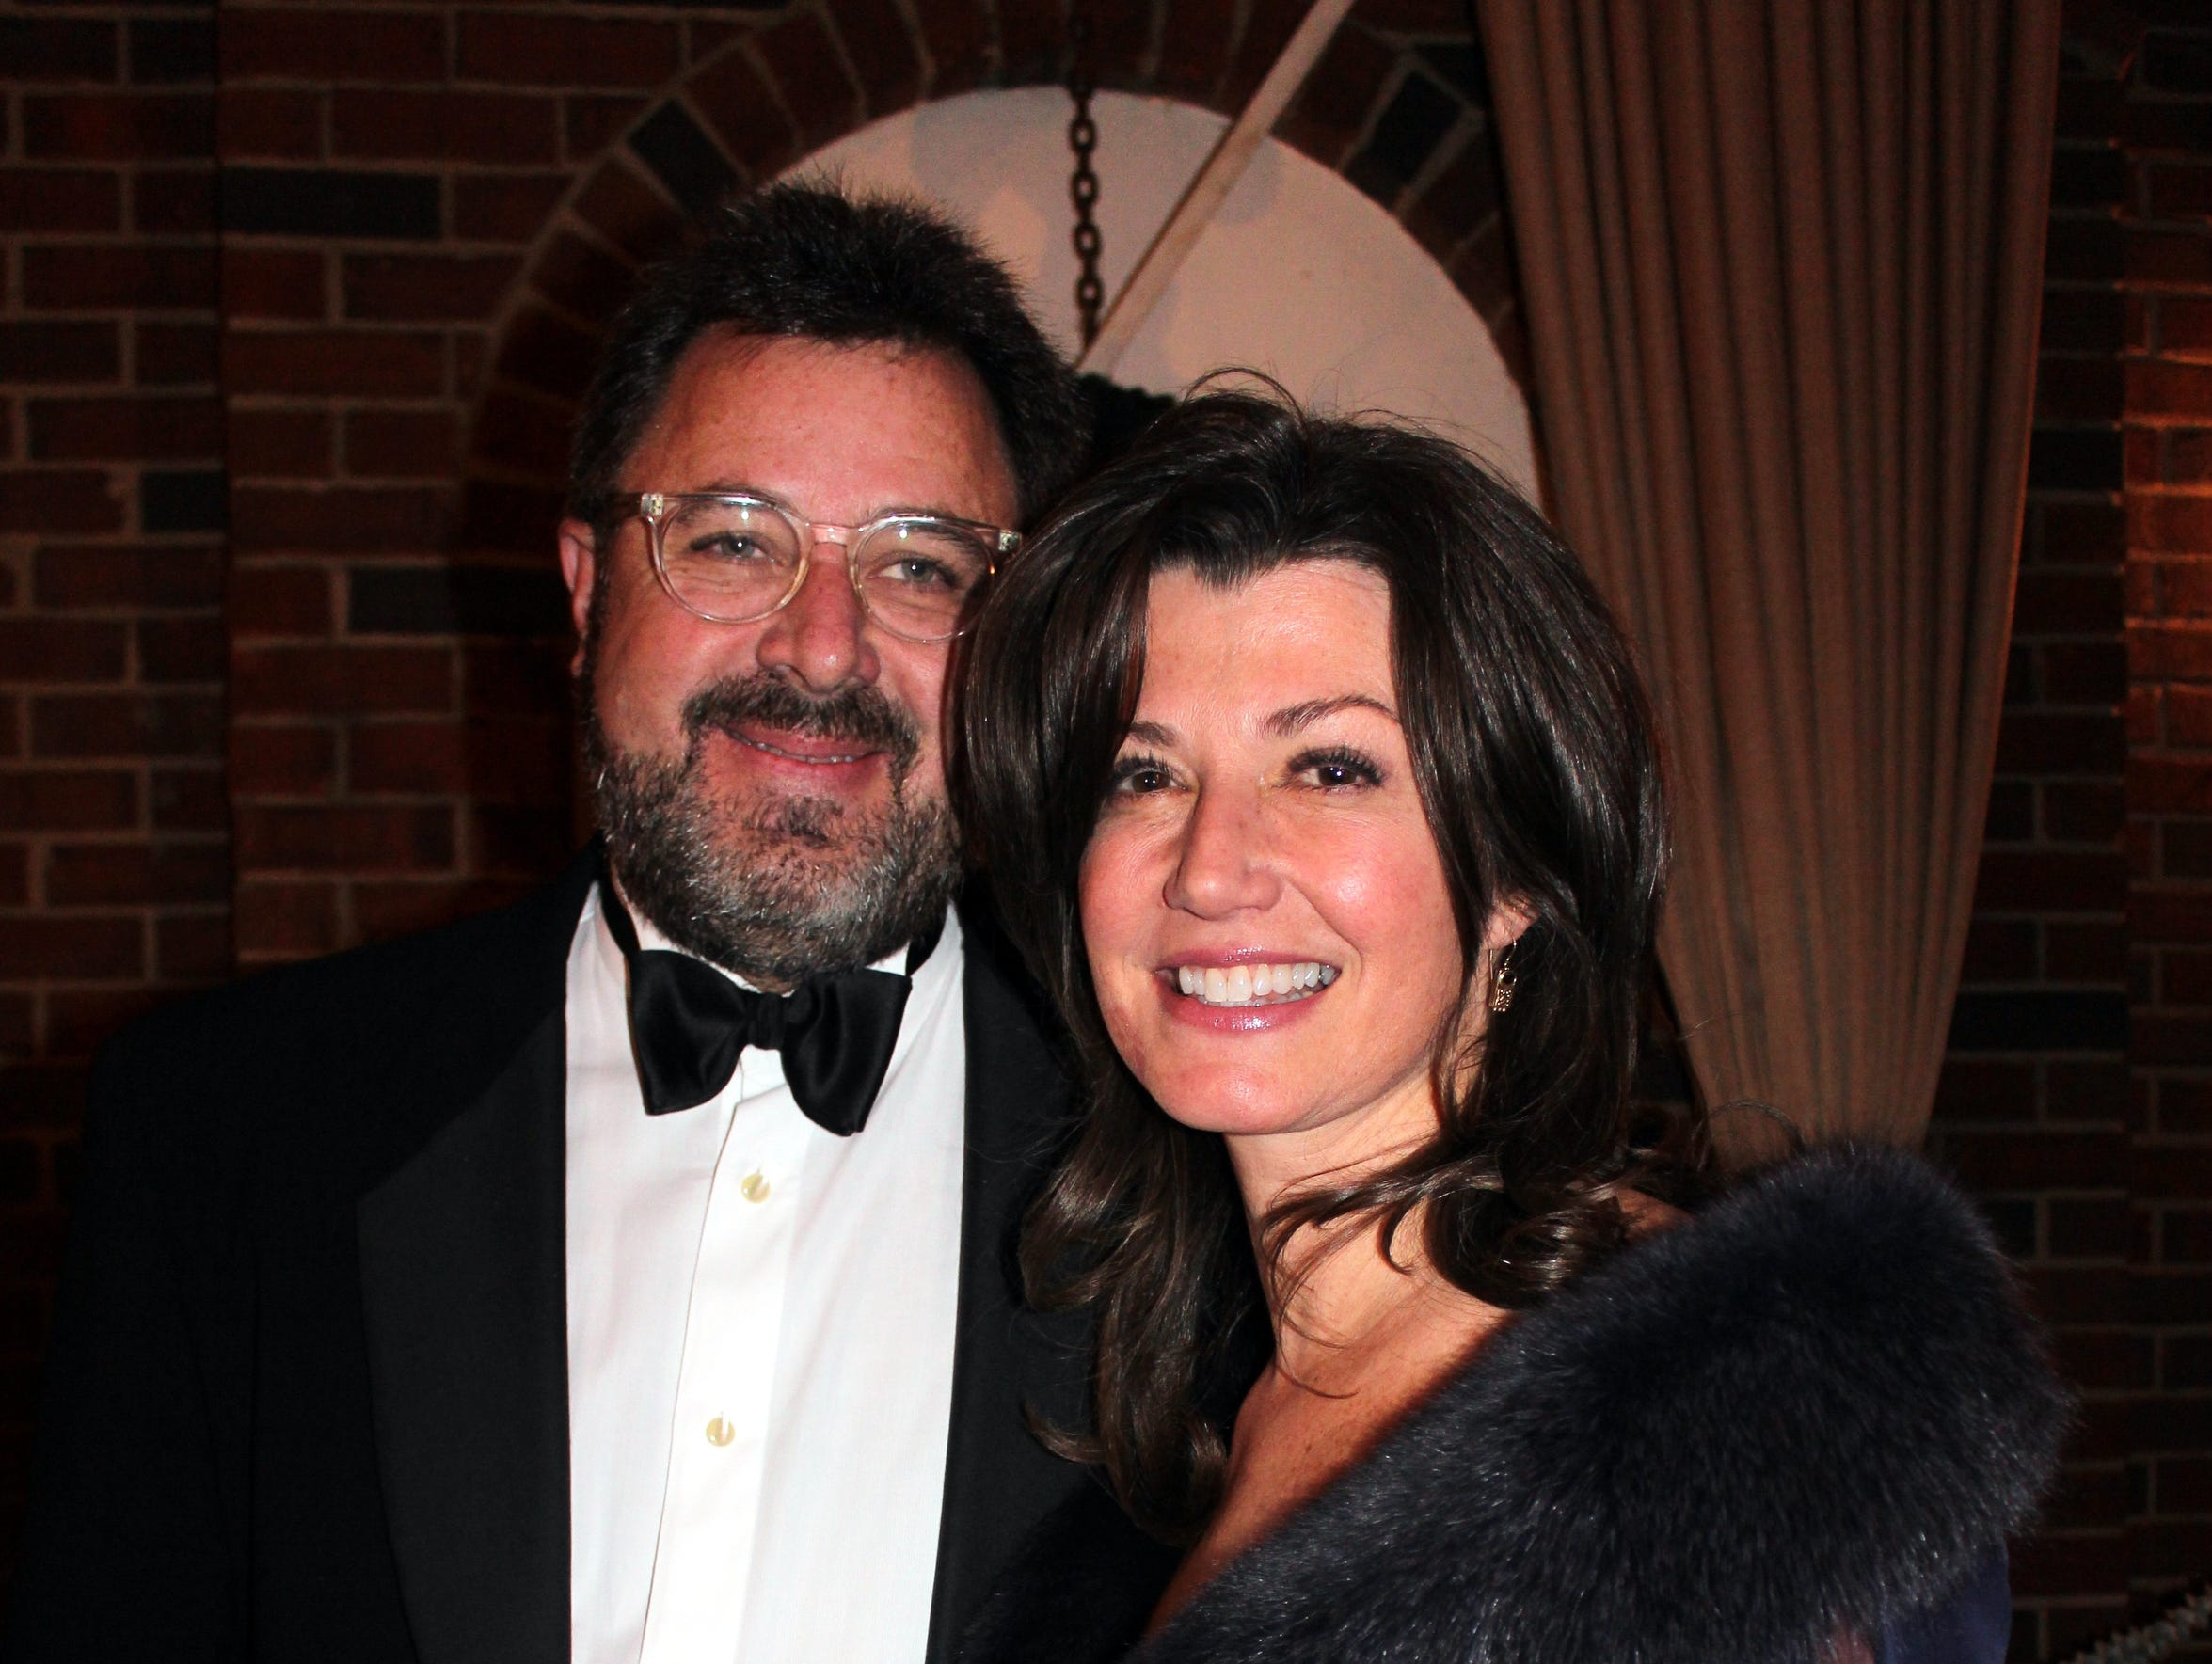 Vince Gill and Amy Grant in 2014.